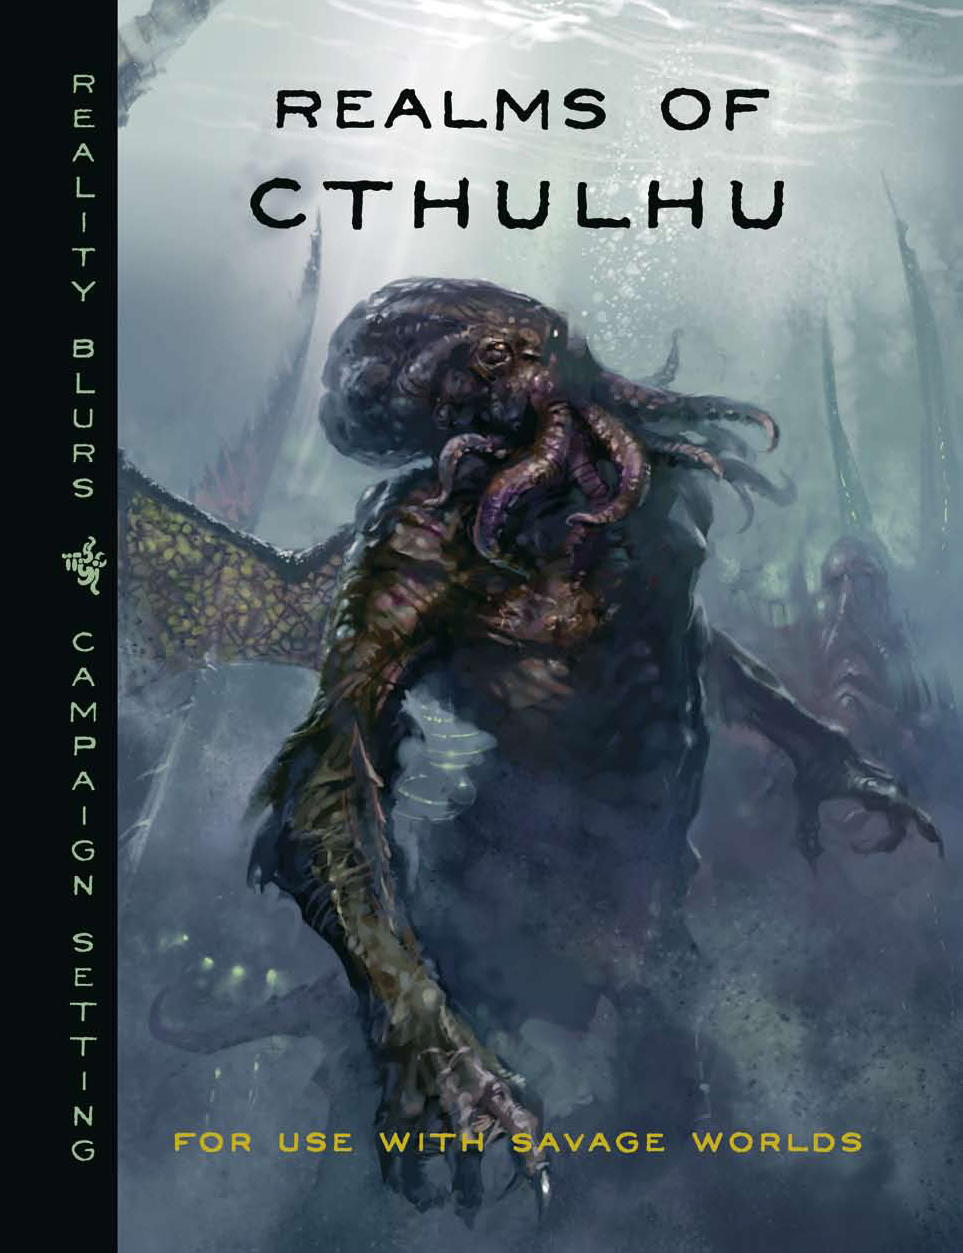 Win a Signed Copy of Realms of Cthulhu!